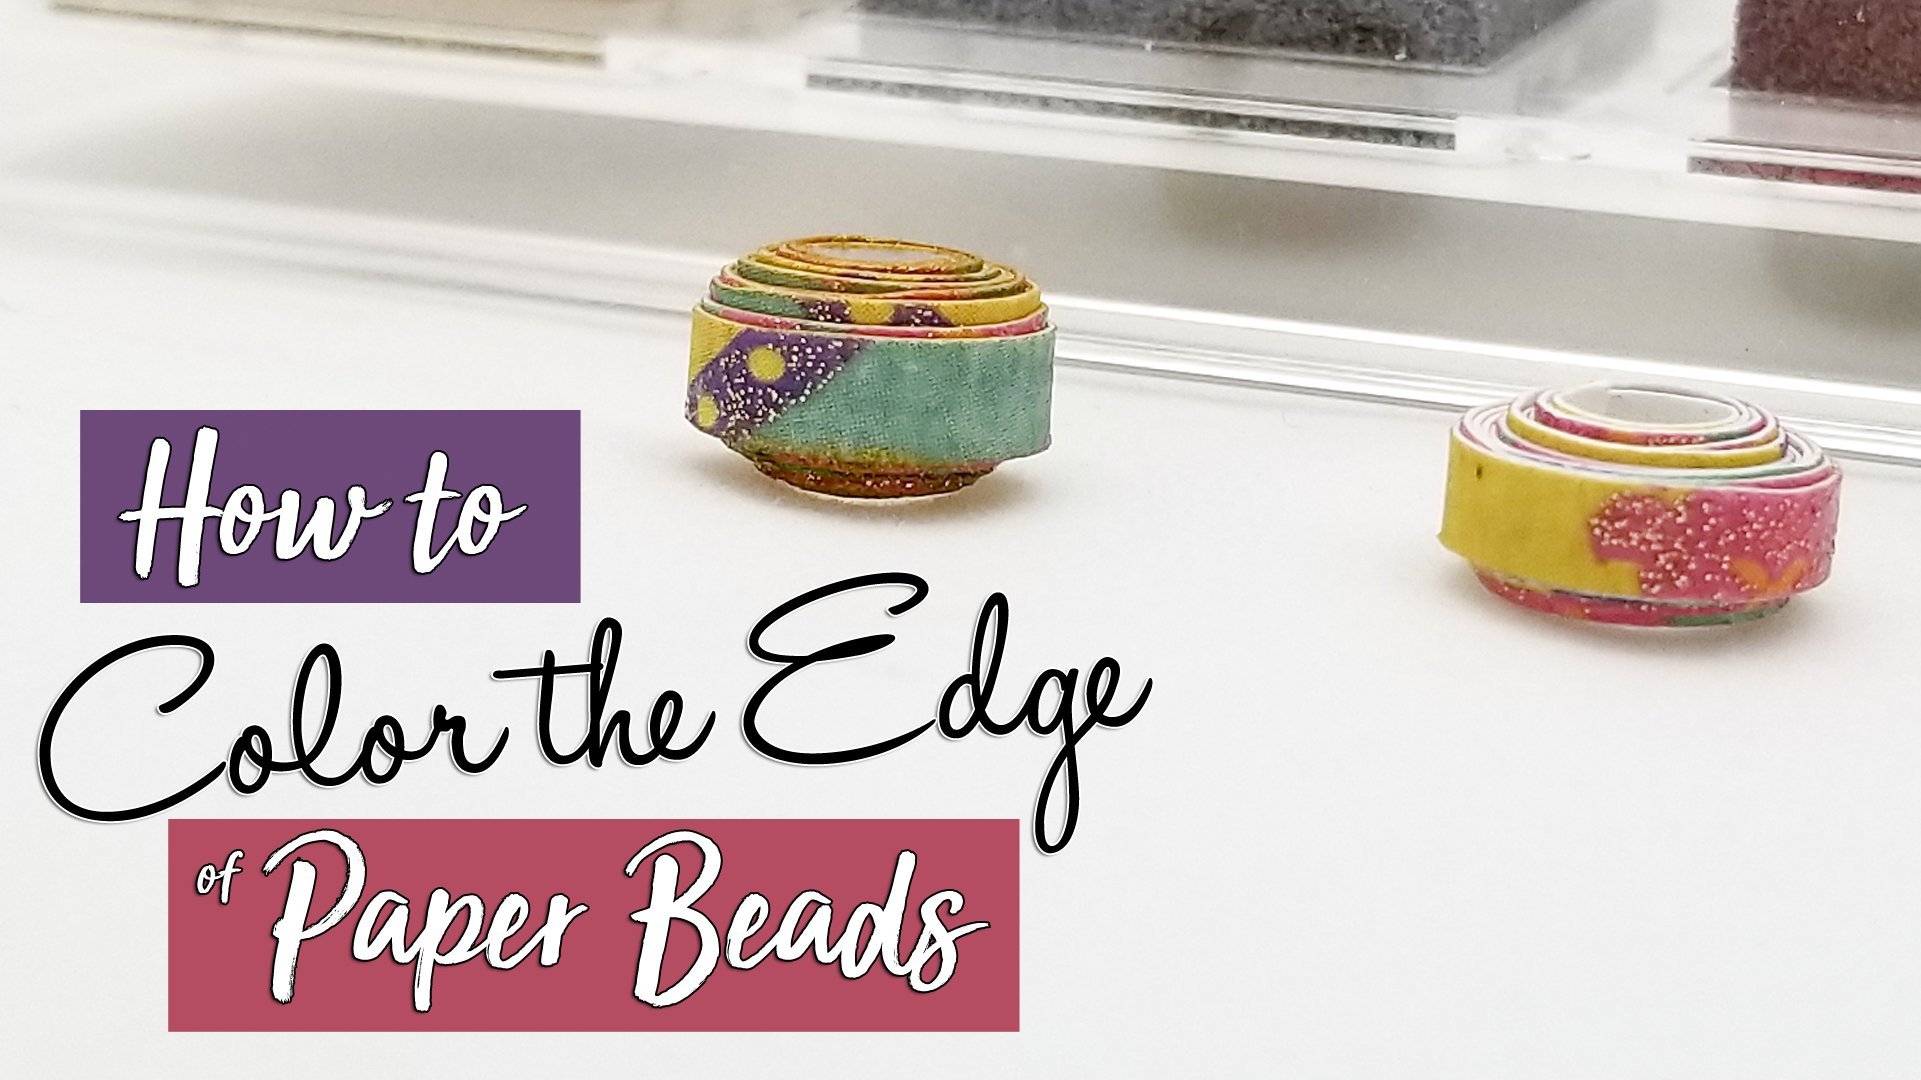 How to Color the Edge of Your Paper Beads